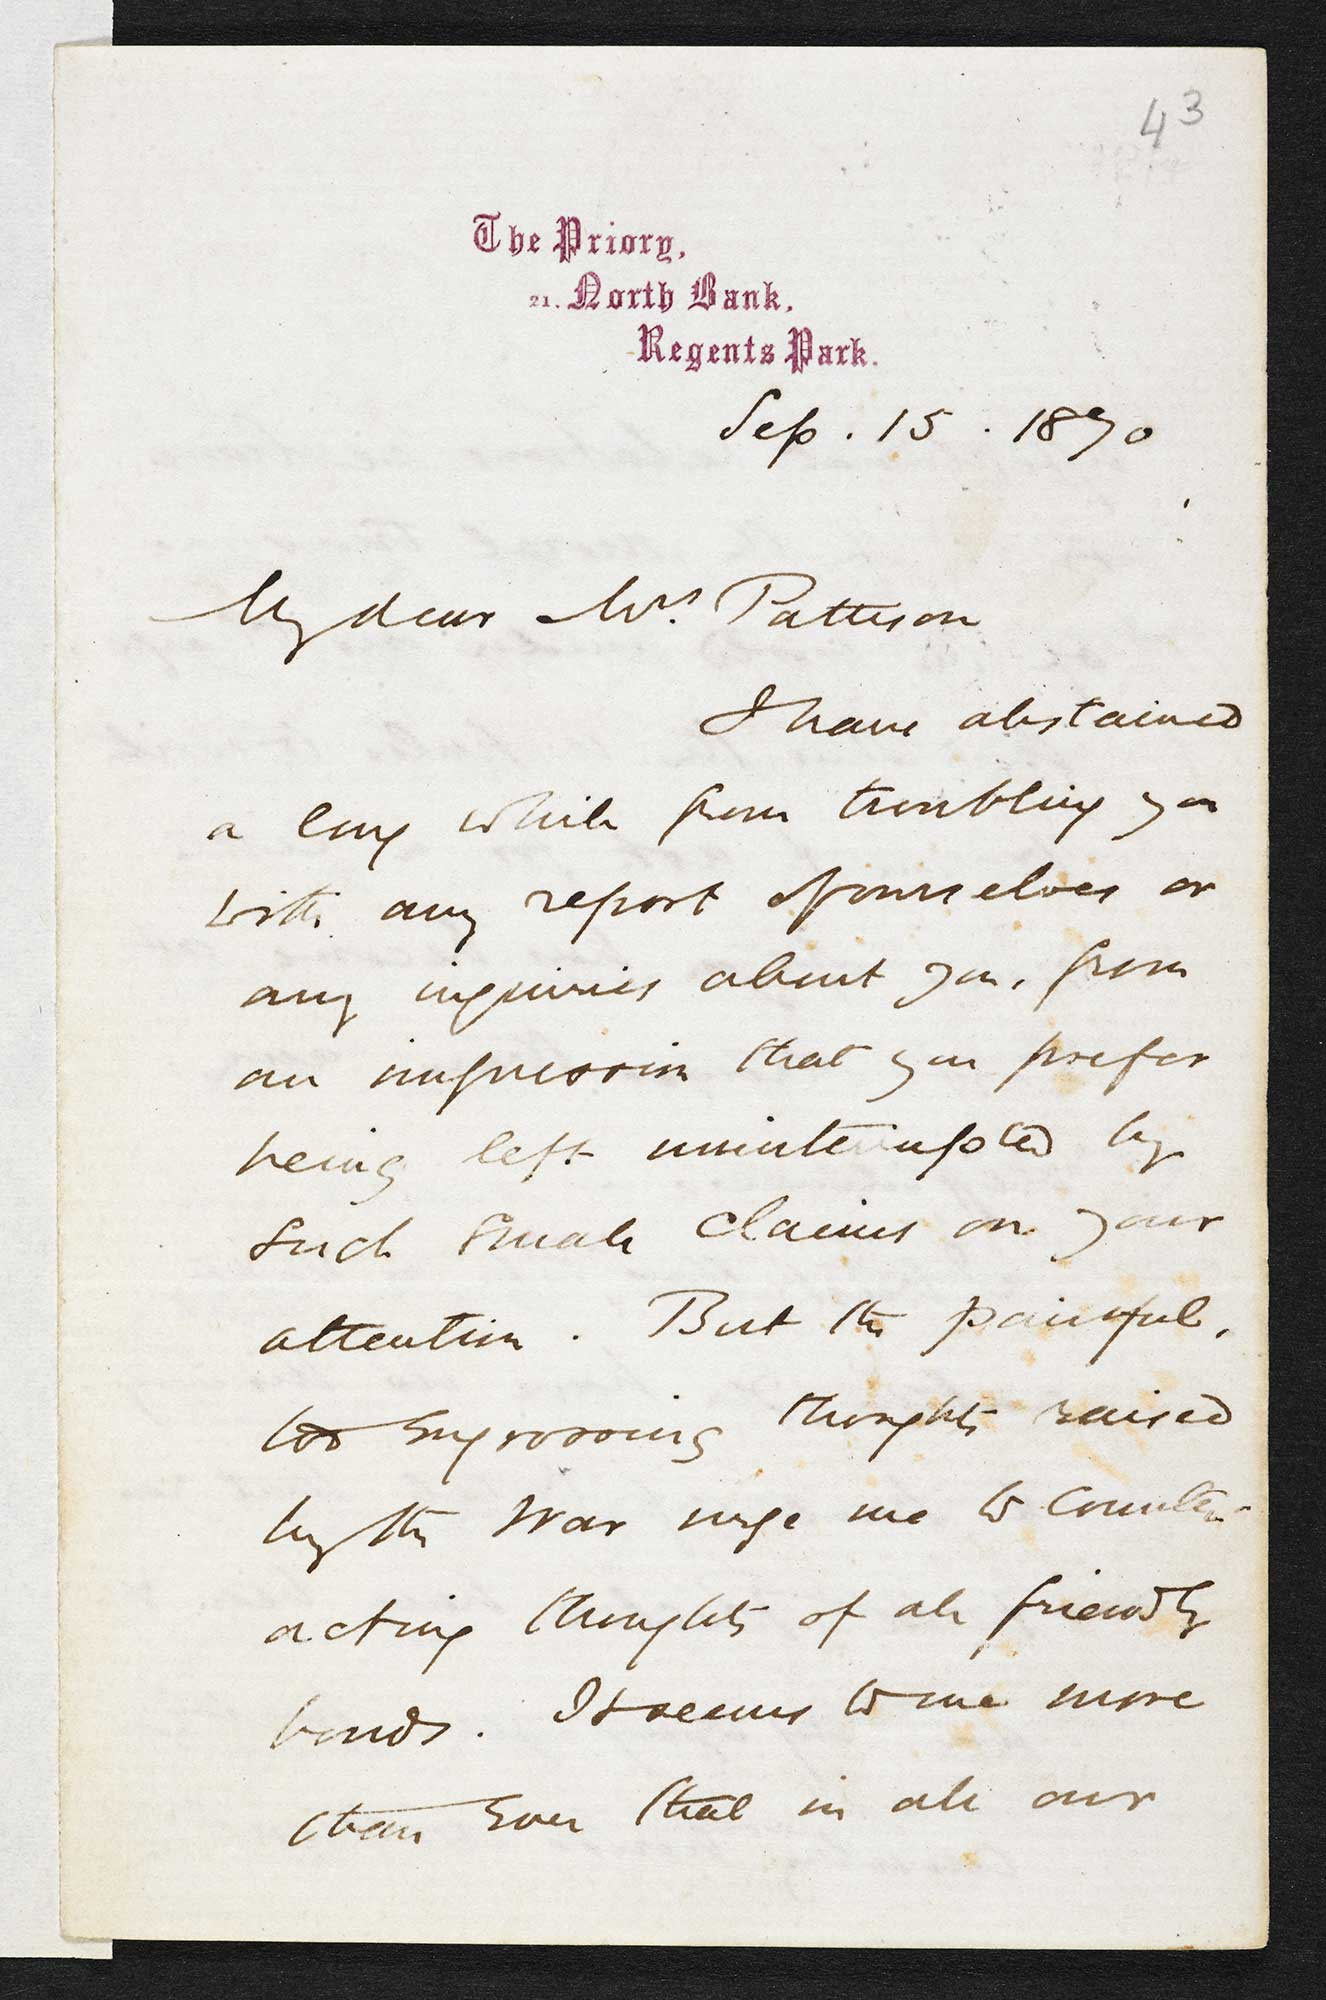 Letter from George Eliot to Emilia Francis Pattison, 15 September 1870